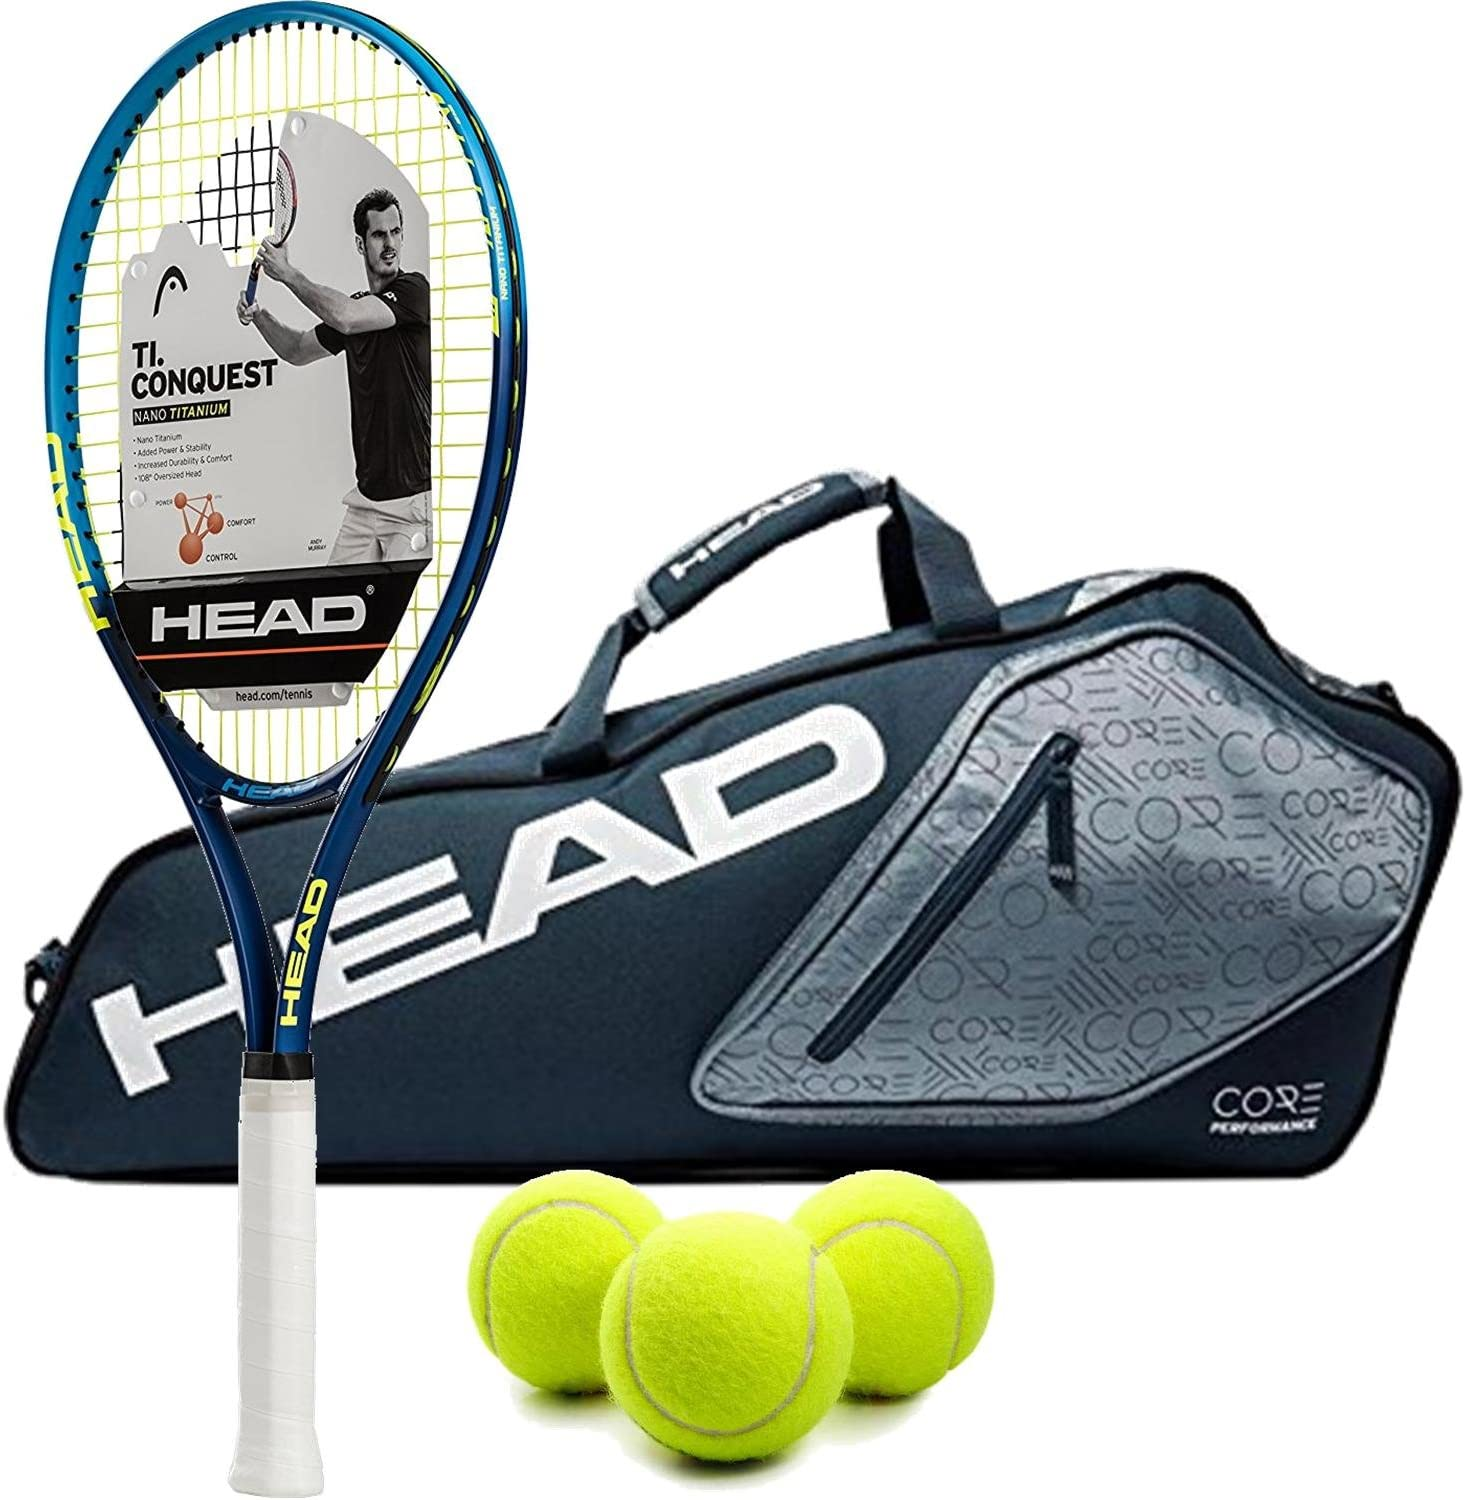 HEAD Ti.Conquest Pre-Strung Tennis Racquet Bundled with a Core Tennis Bag or Backpack and a Can of Tennis Balls